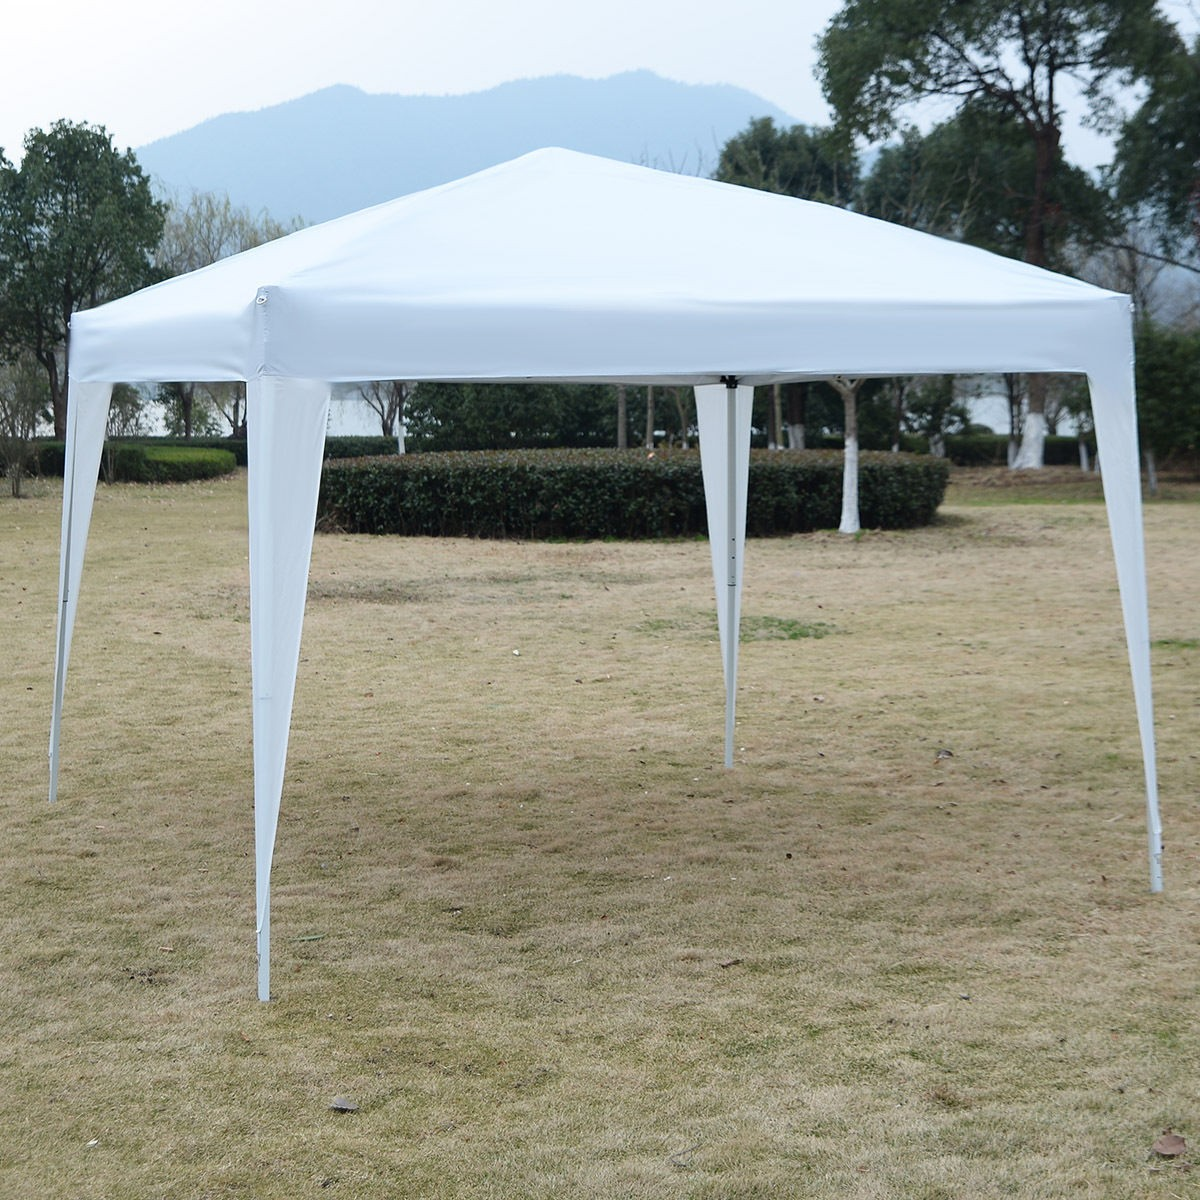 & 10 x 10 EZ Pop Up Canopy Tent Gazebo